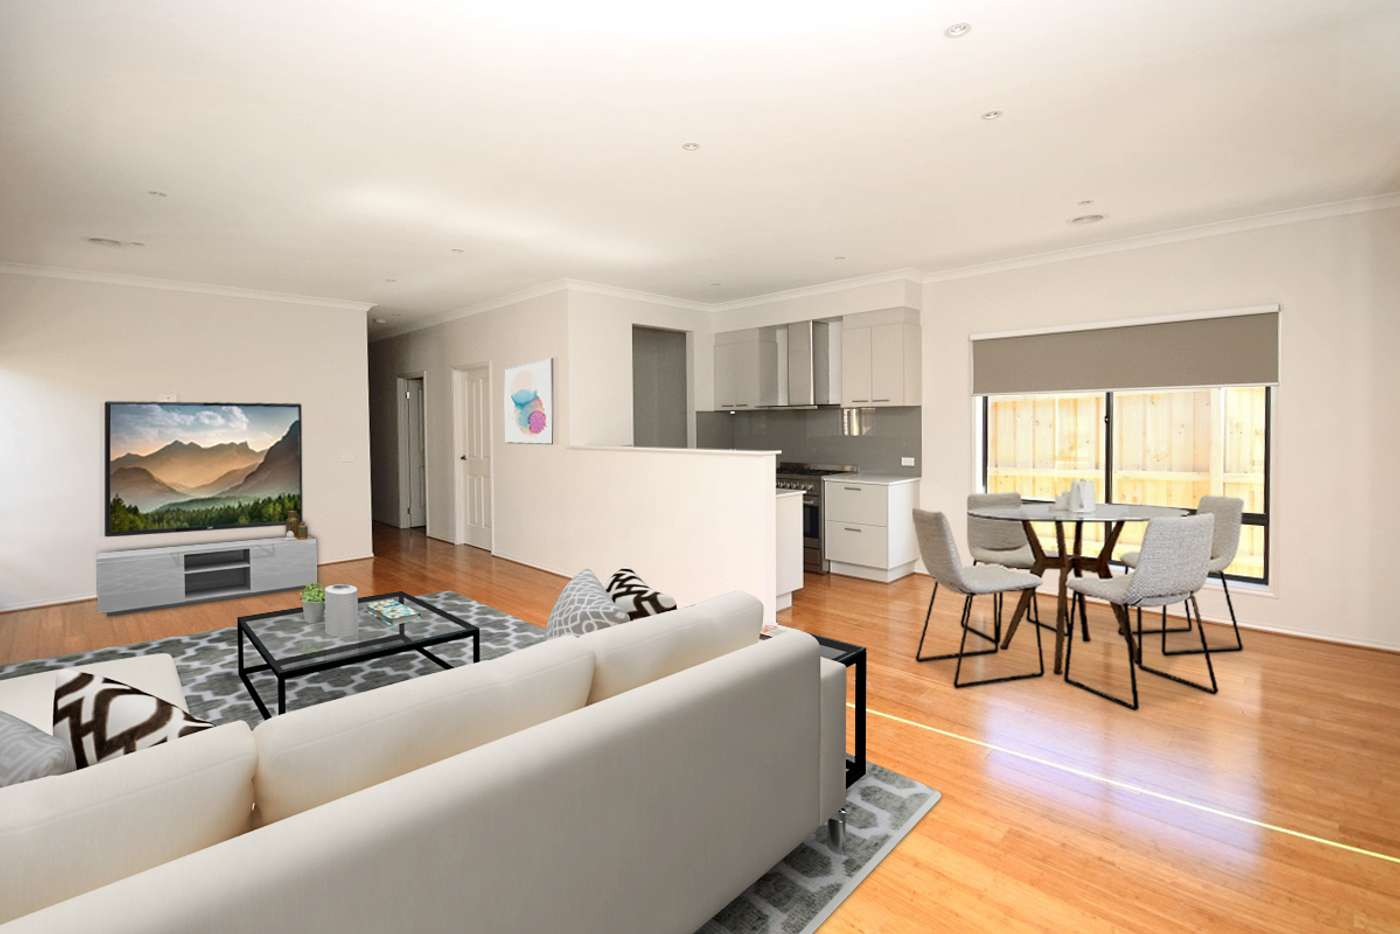 Main view of Homely house listing, 10 Huntley Street, Brighton VIC 3186